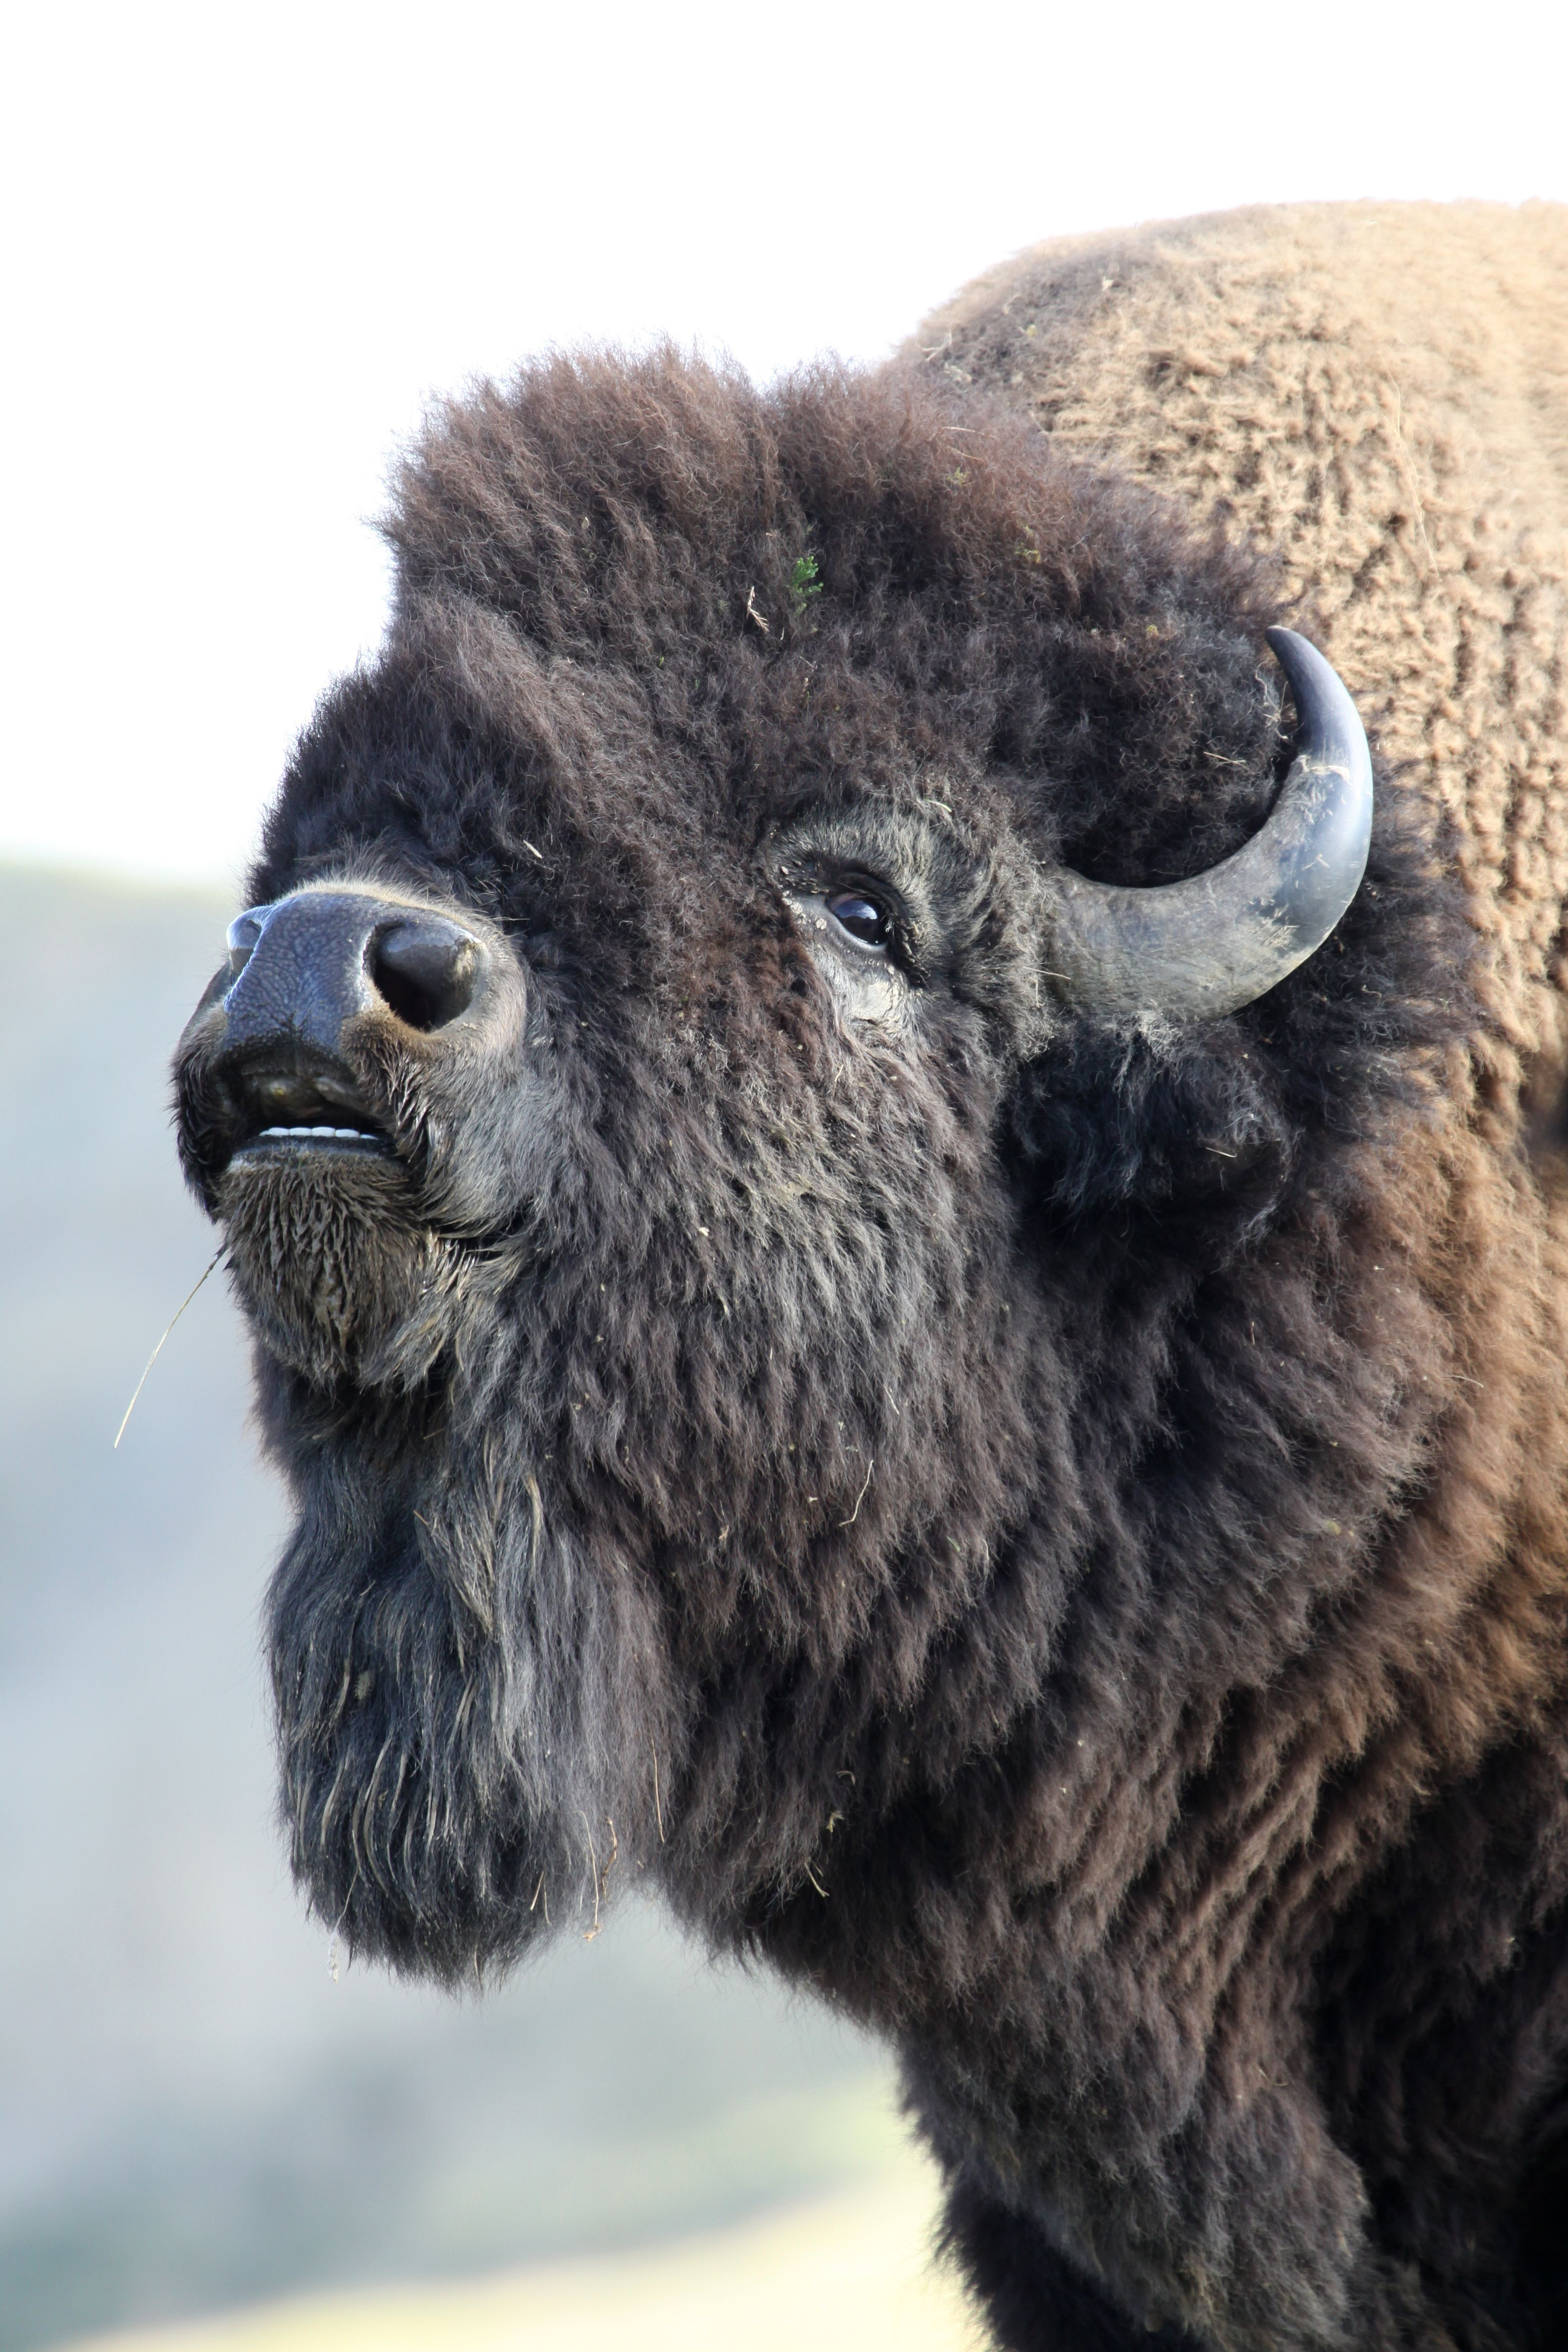 Buffalo from TR Park in ND Bison photo, North american